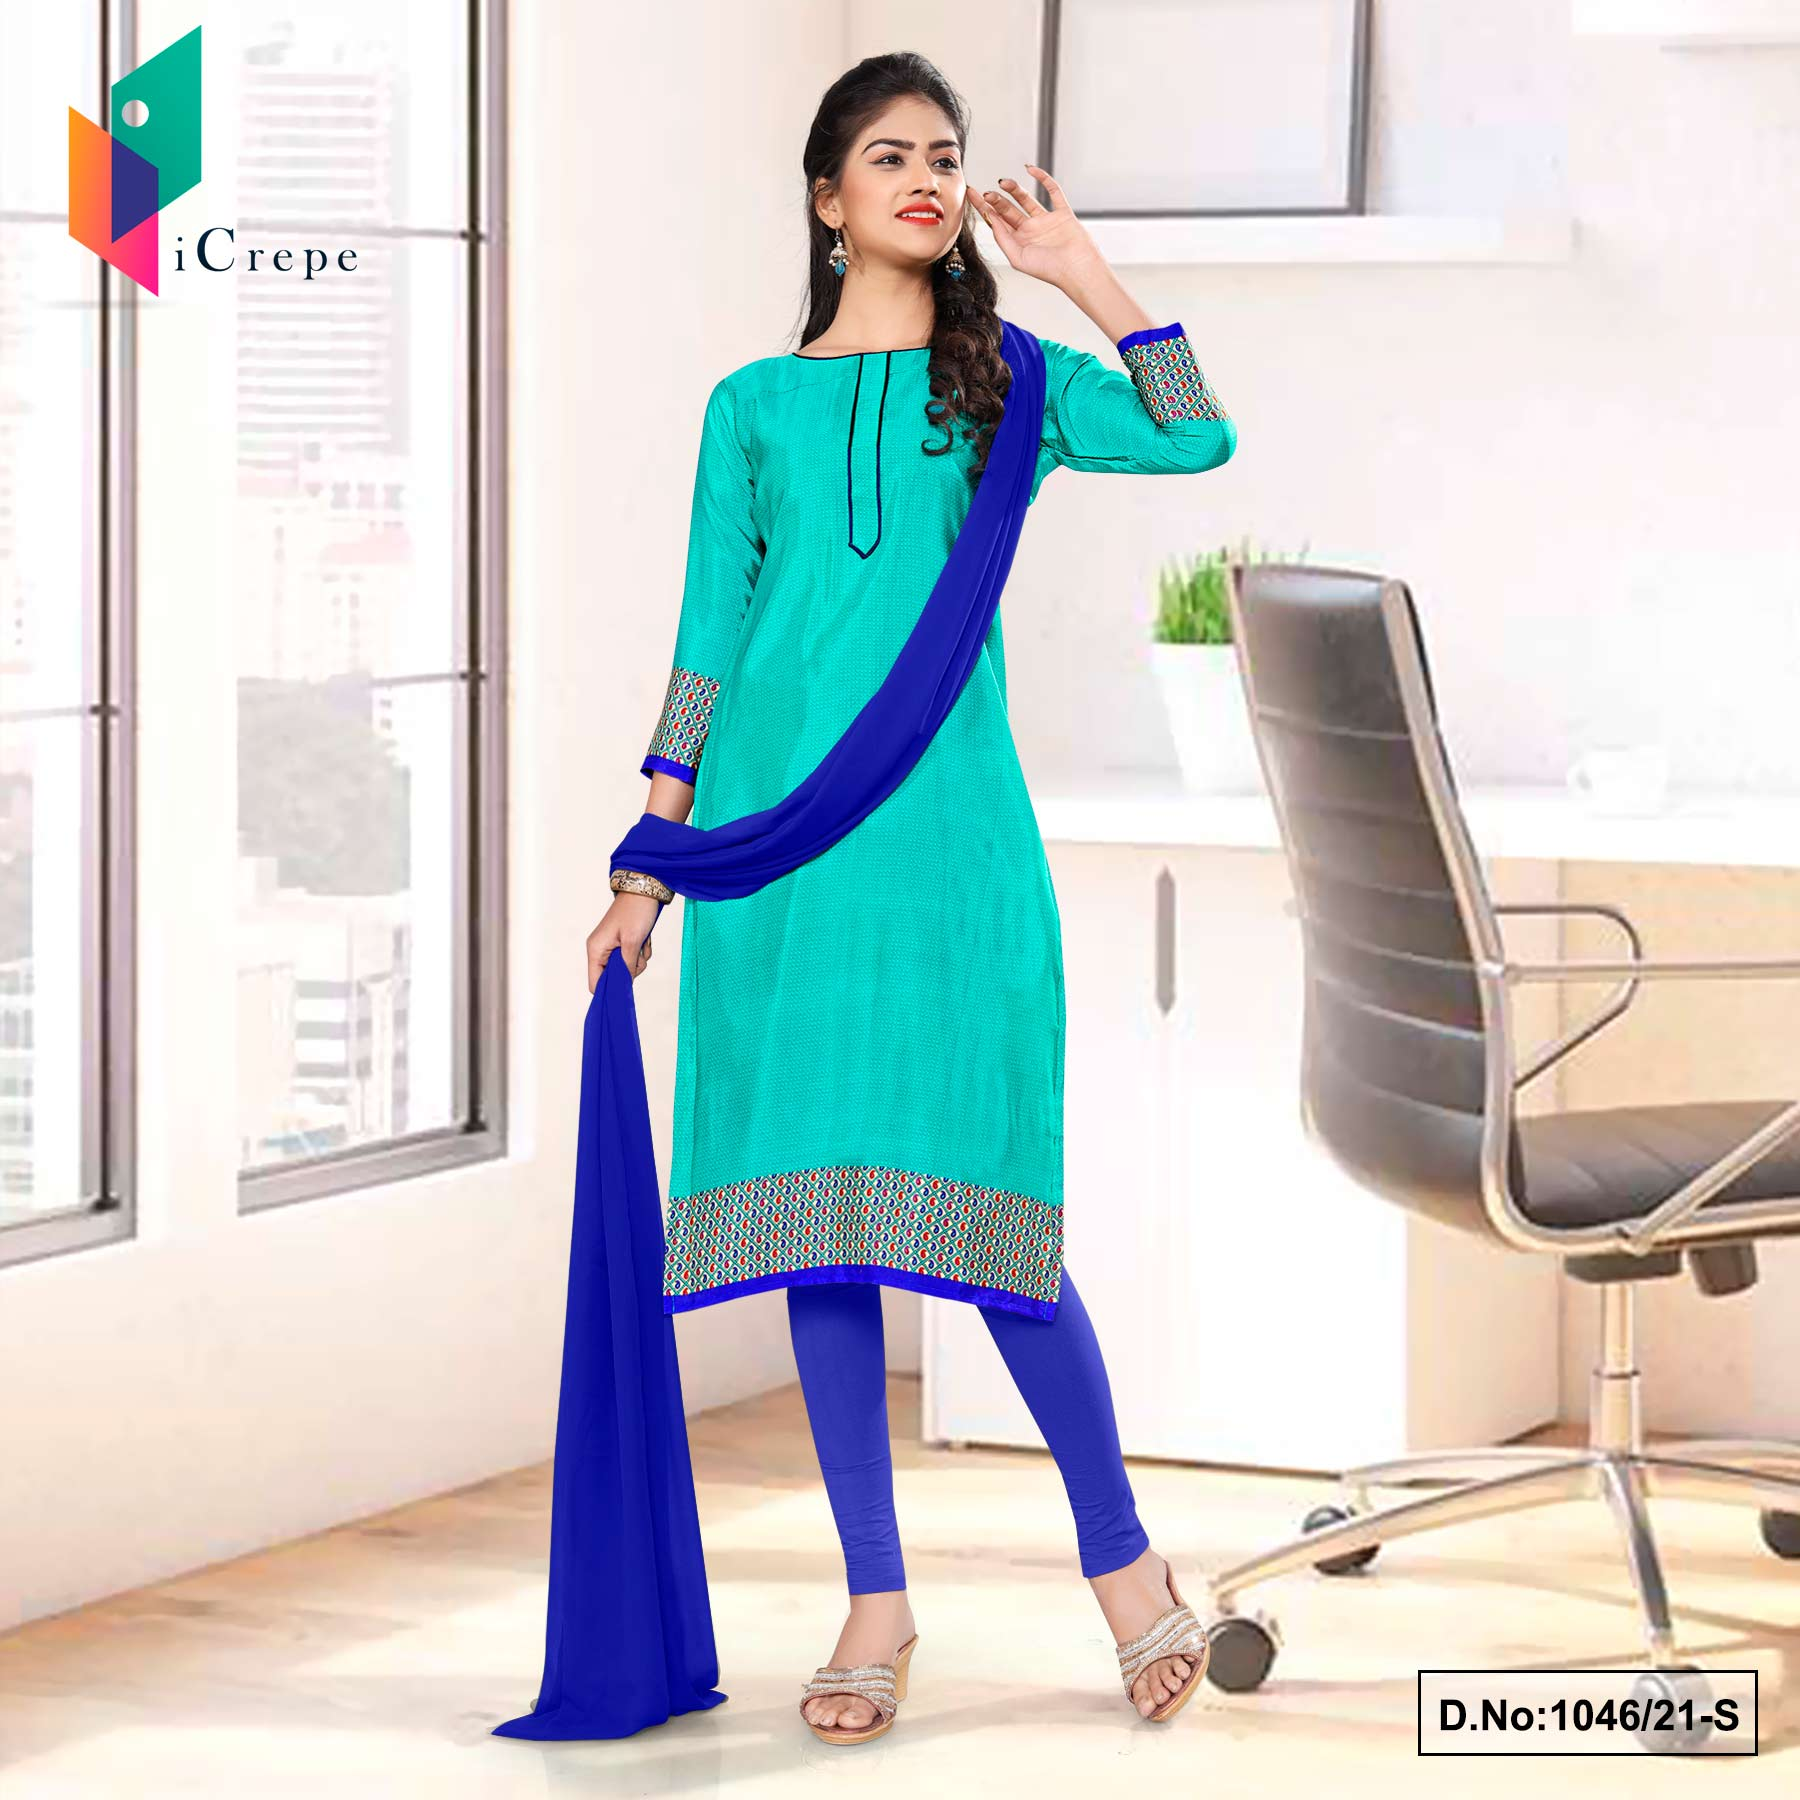 Sea Green Blue Premium Italian Silk Crepe Uniform Salwar Kameez for Hospital Staff